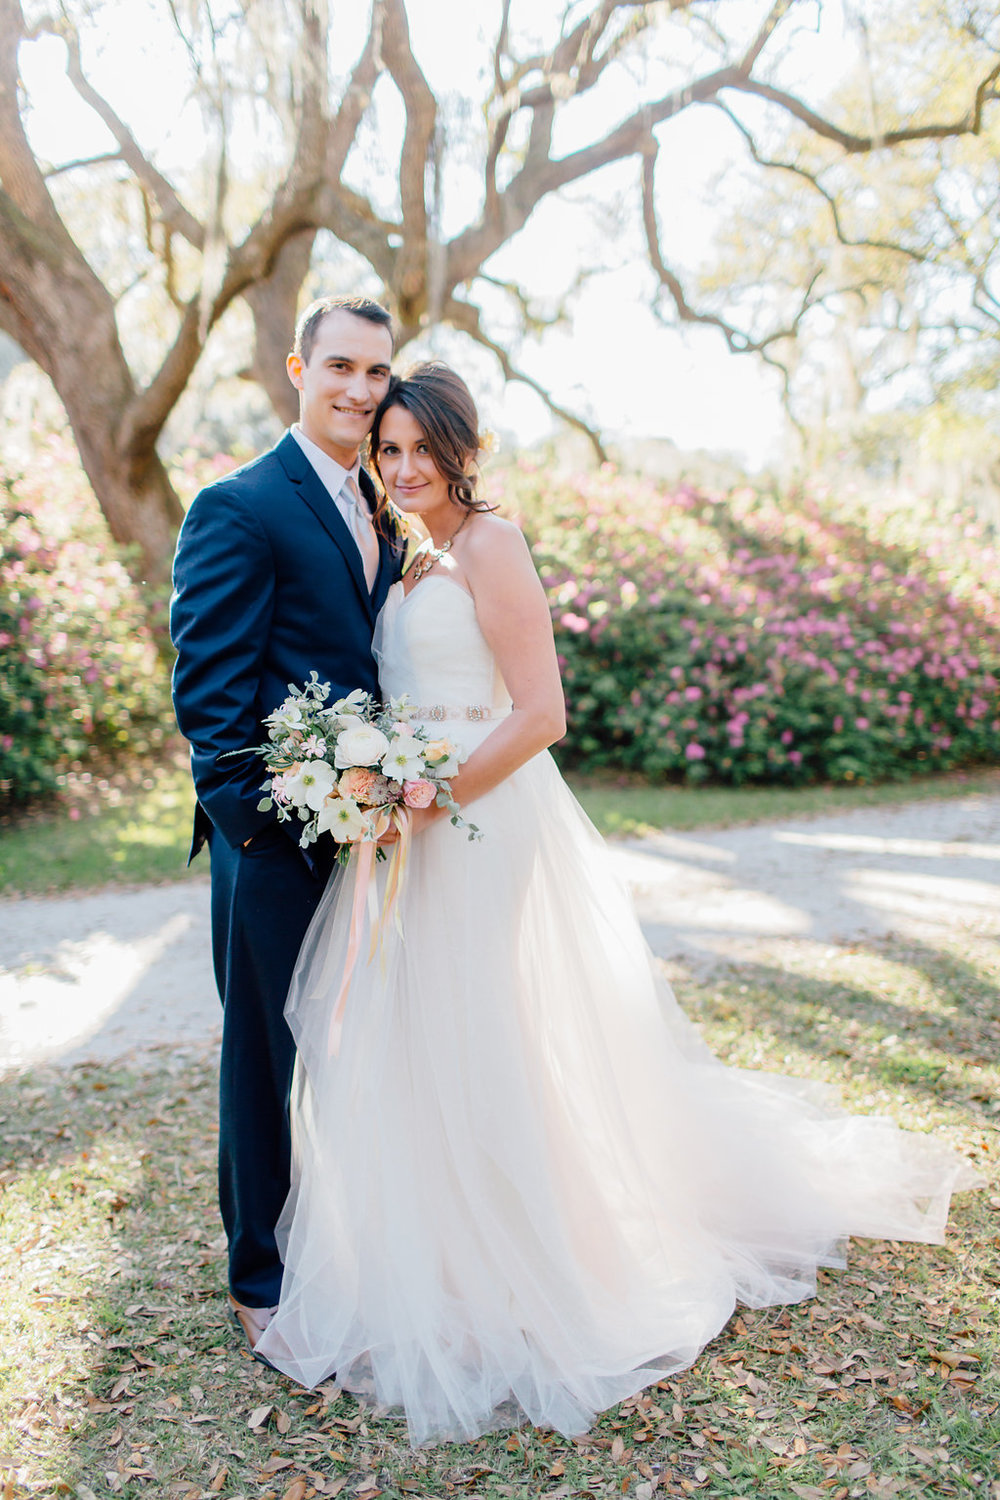 hannah-lane-photography-southern-weddings-blog-charleson-wedding-charleston-styled-shoot-ivory-and-beau-bridal-boutique-blush-by-hayley-paige-candi-blush-tulle-wedding-dress-savannah-bridal-boutique-savannah-wedding-dresses-rosegold-sash-31.jpg